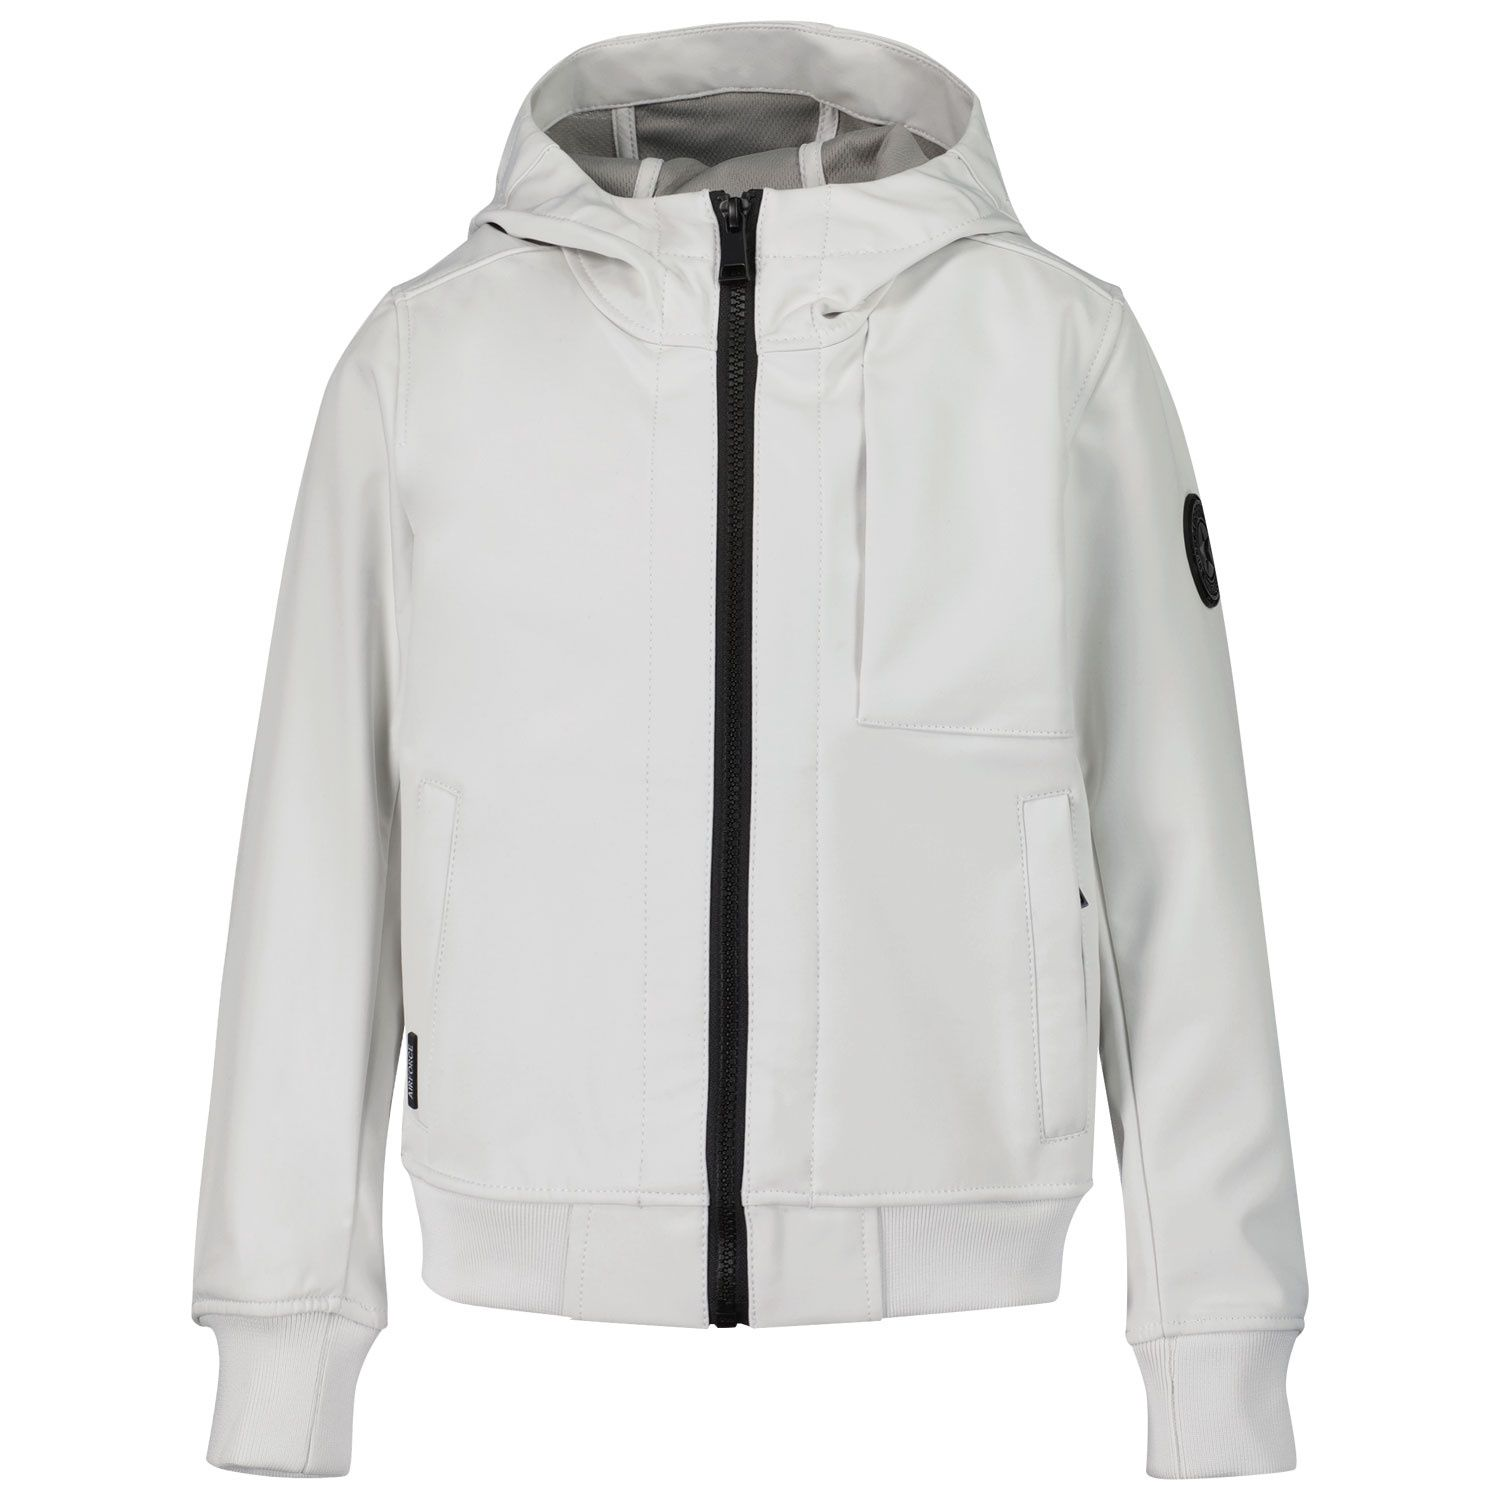 Picture of Airforce HRB0575 kids jacket white